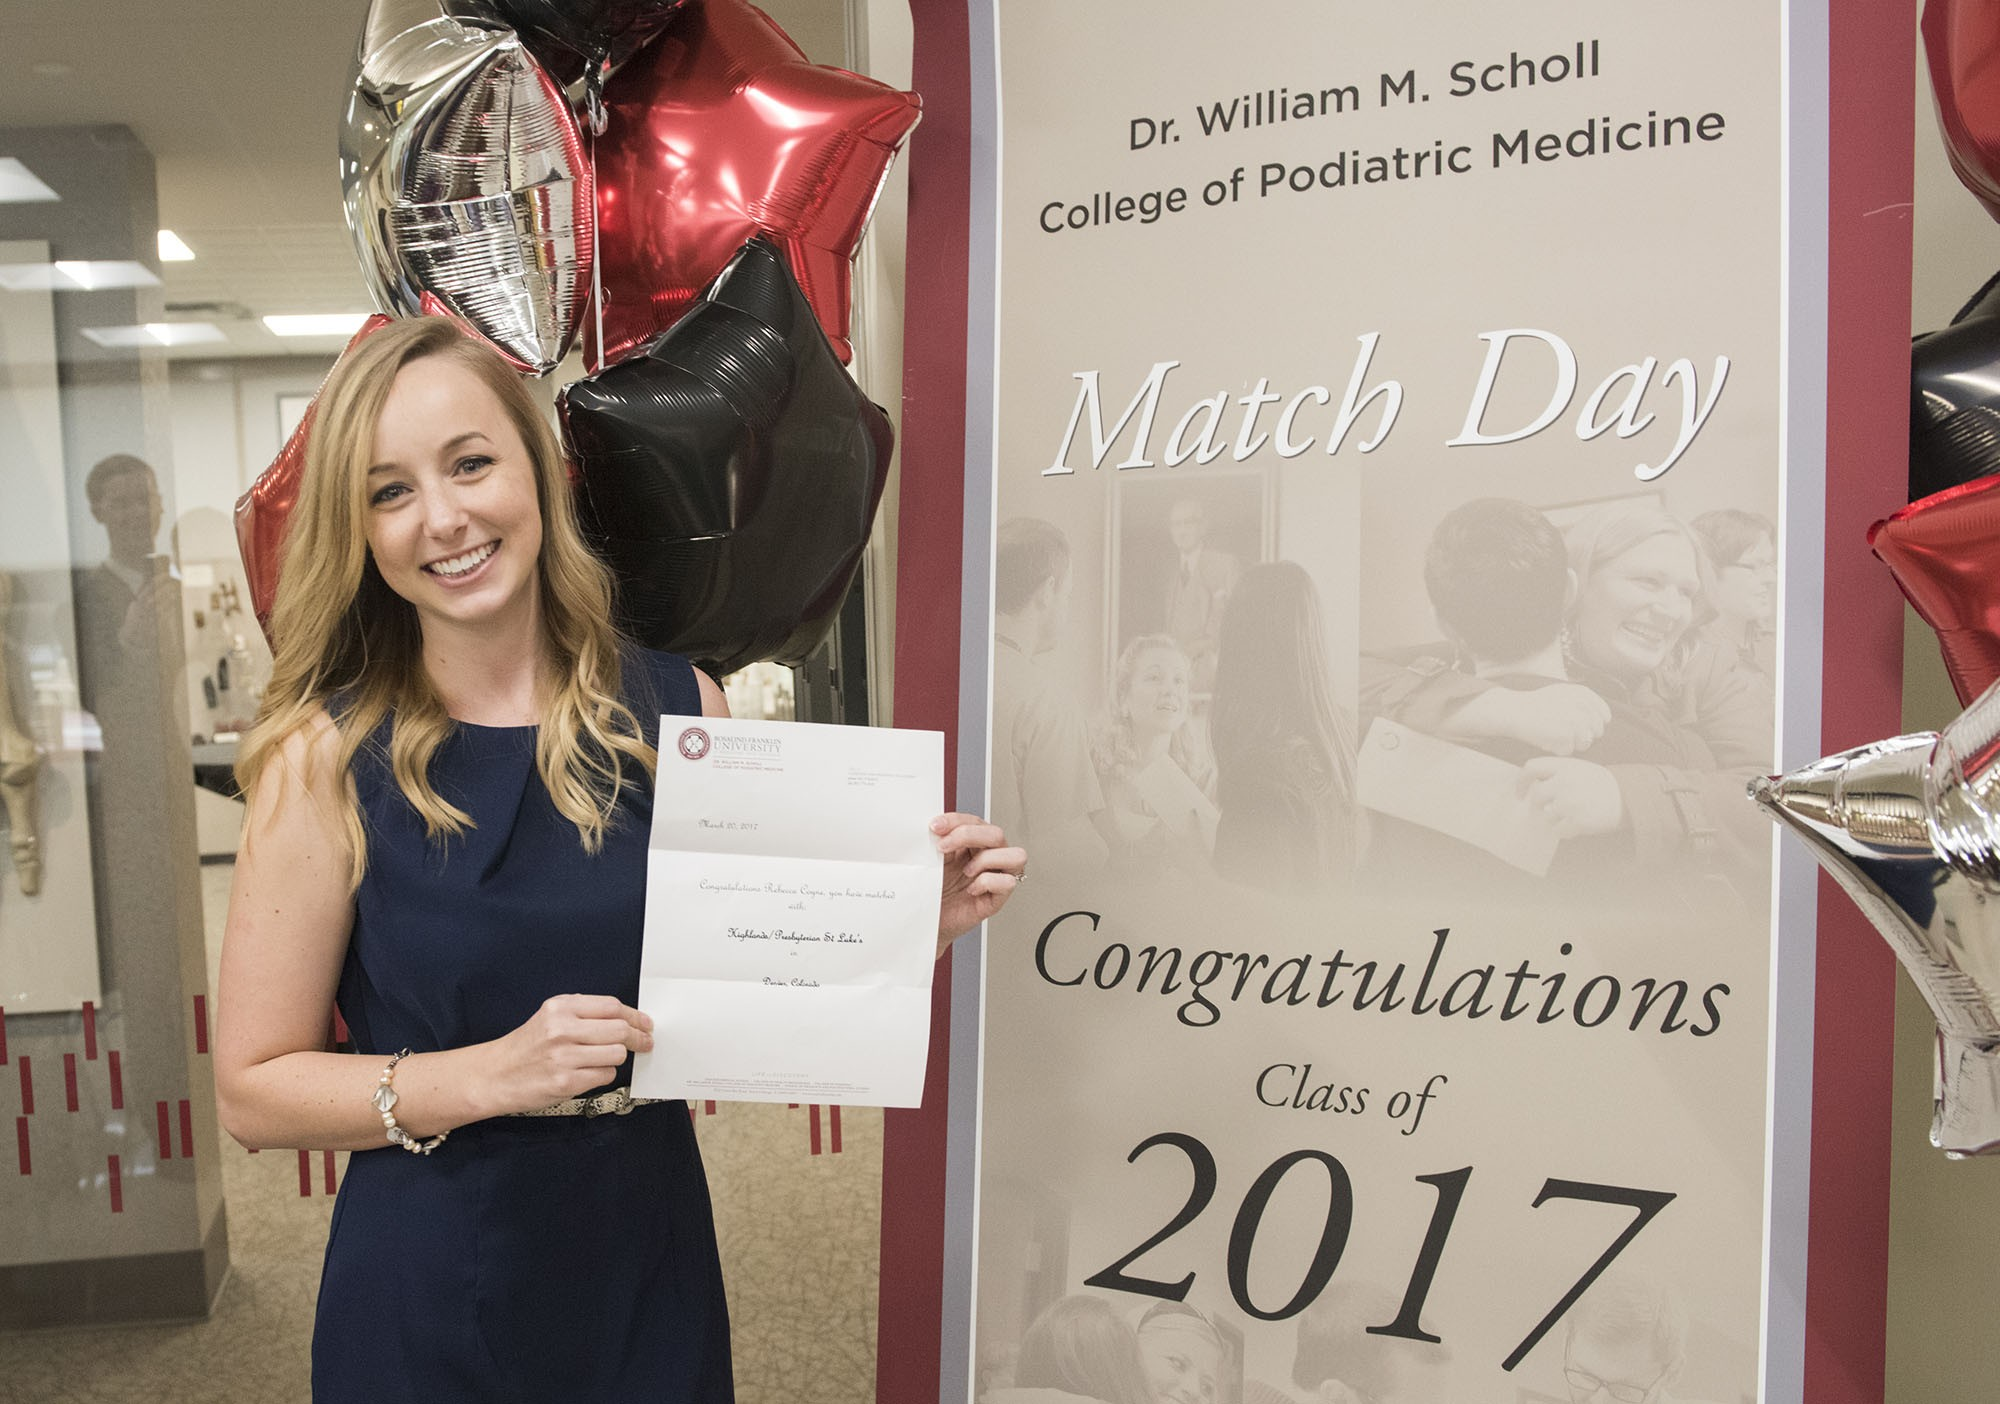 Rebecca Coyne SCPM 17 Celebrates Her Residency Match To Presbyterian St Lukes Medical Center In Denver CO During The Dr William M Scholl College Of